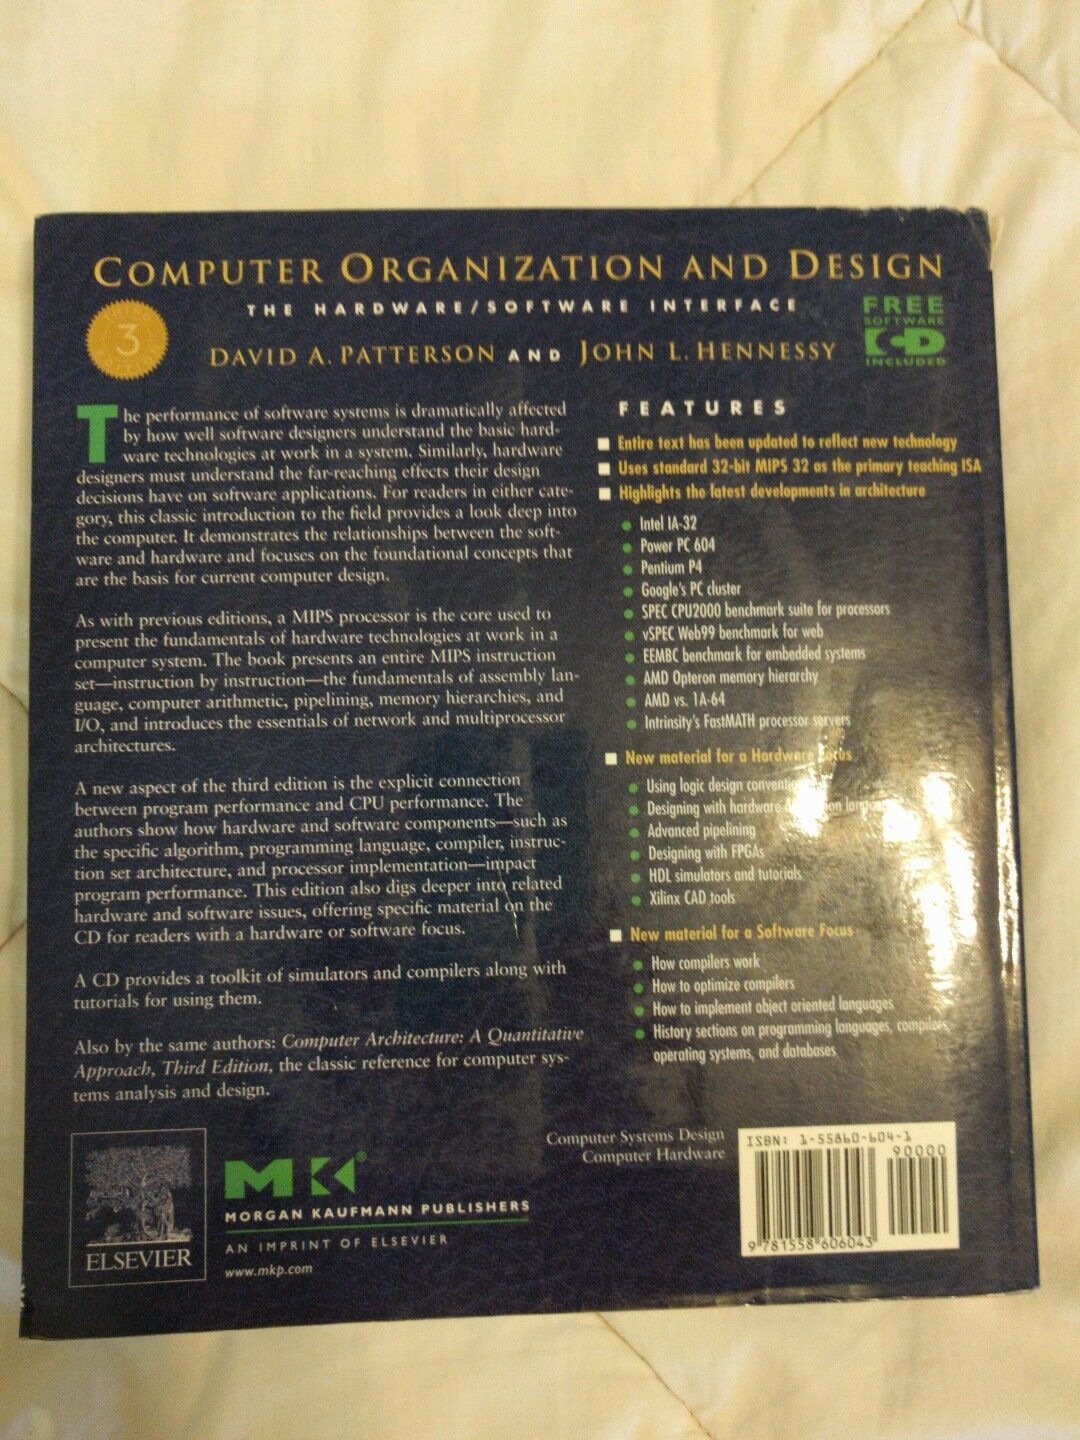 The Morgan Kaufmann Series In Computer Architecture And Design Ser Computer Organization And Design The Hardware Software Interface By John L Hennessy And David A Patterson 2004 Trade Paperback Revised Edition For